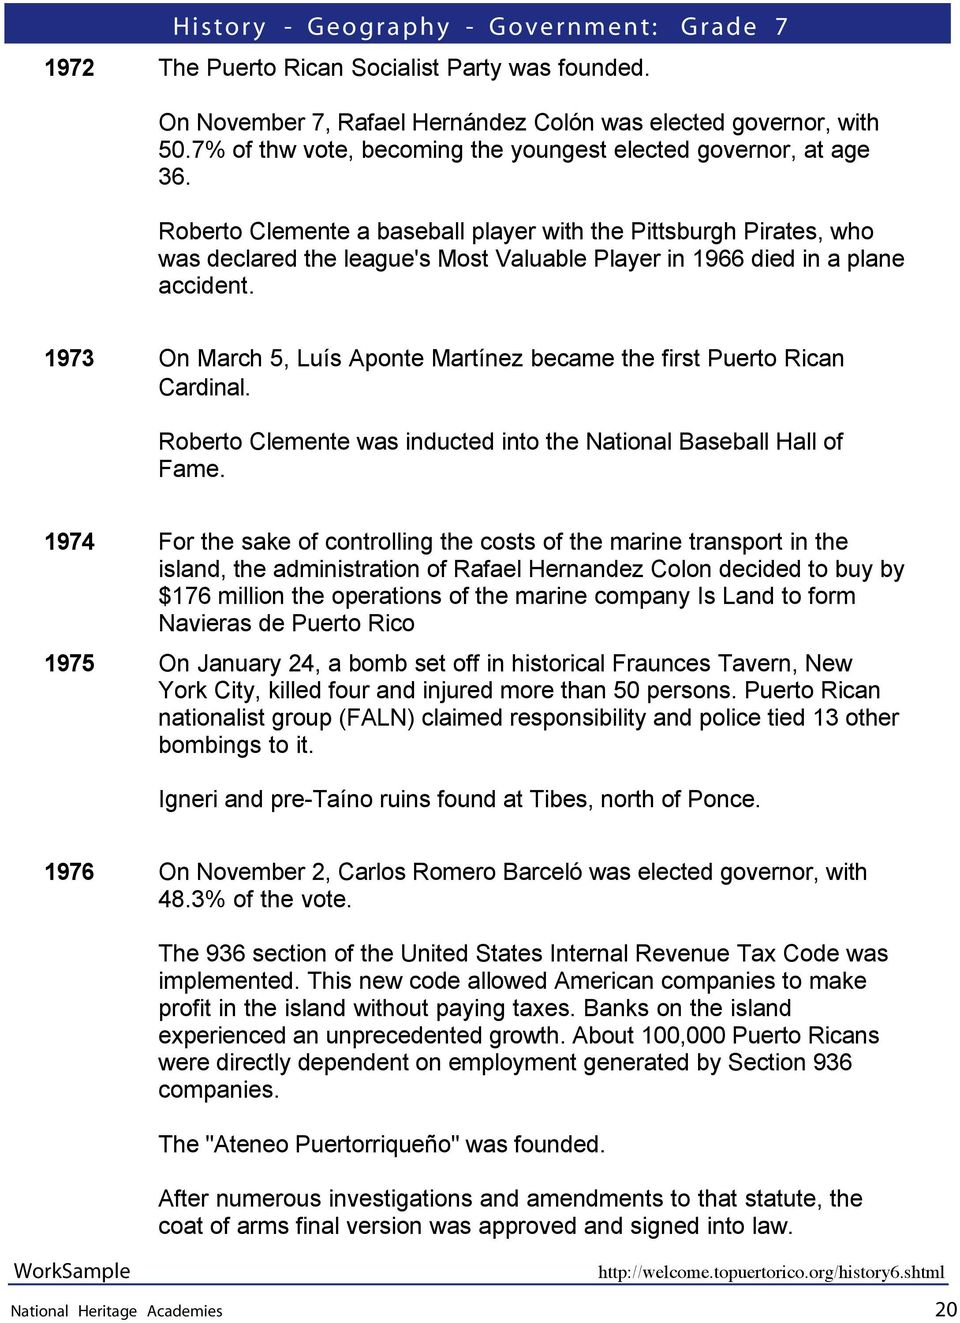 1973 On March 5, Luís Aponte Martínez became the first Puerto Rican Cardinal. Roberto Clemente was inducted into the National Baseball Hall of Fame.